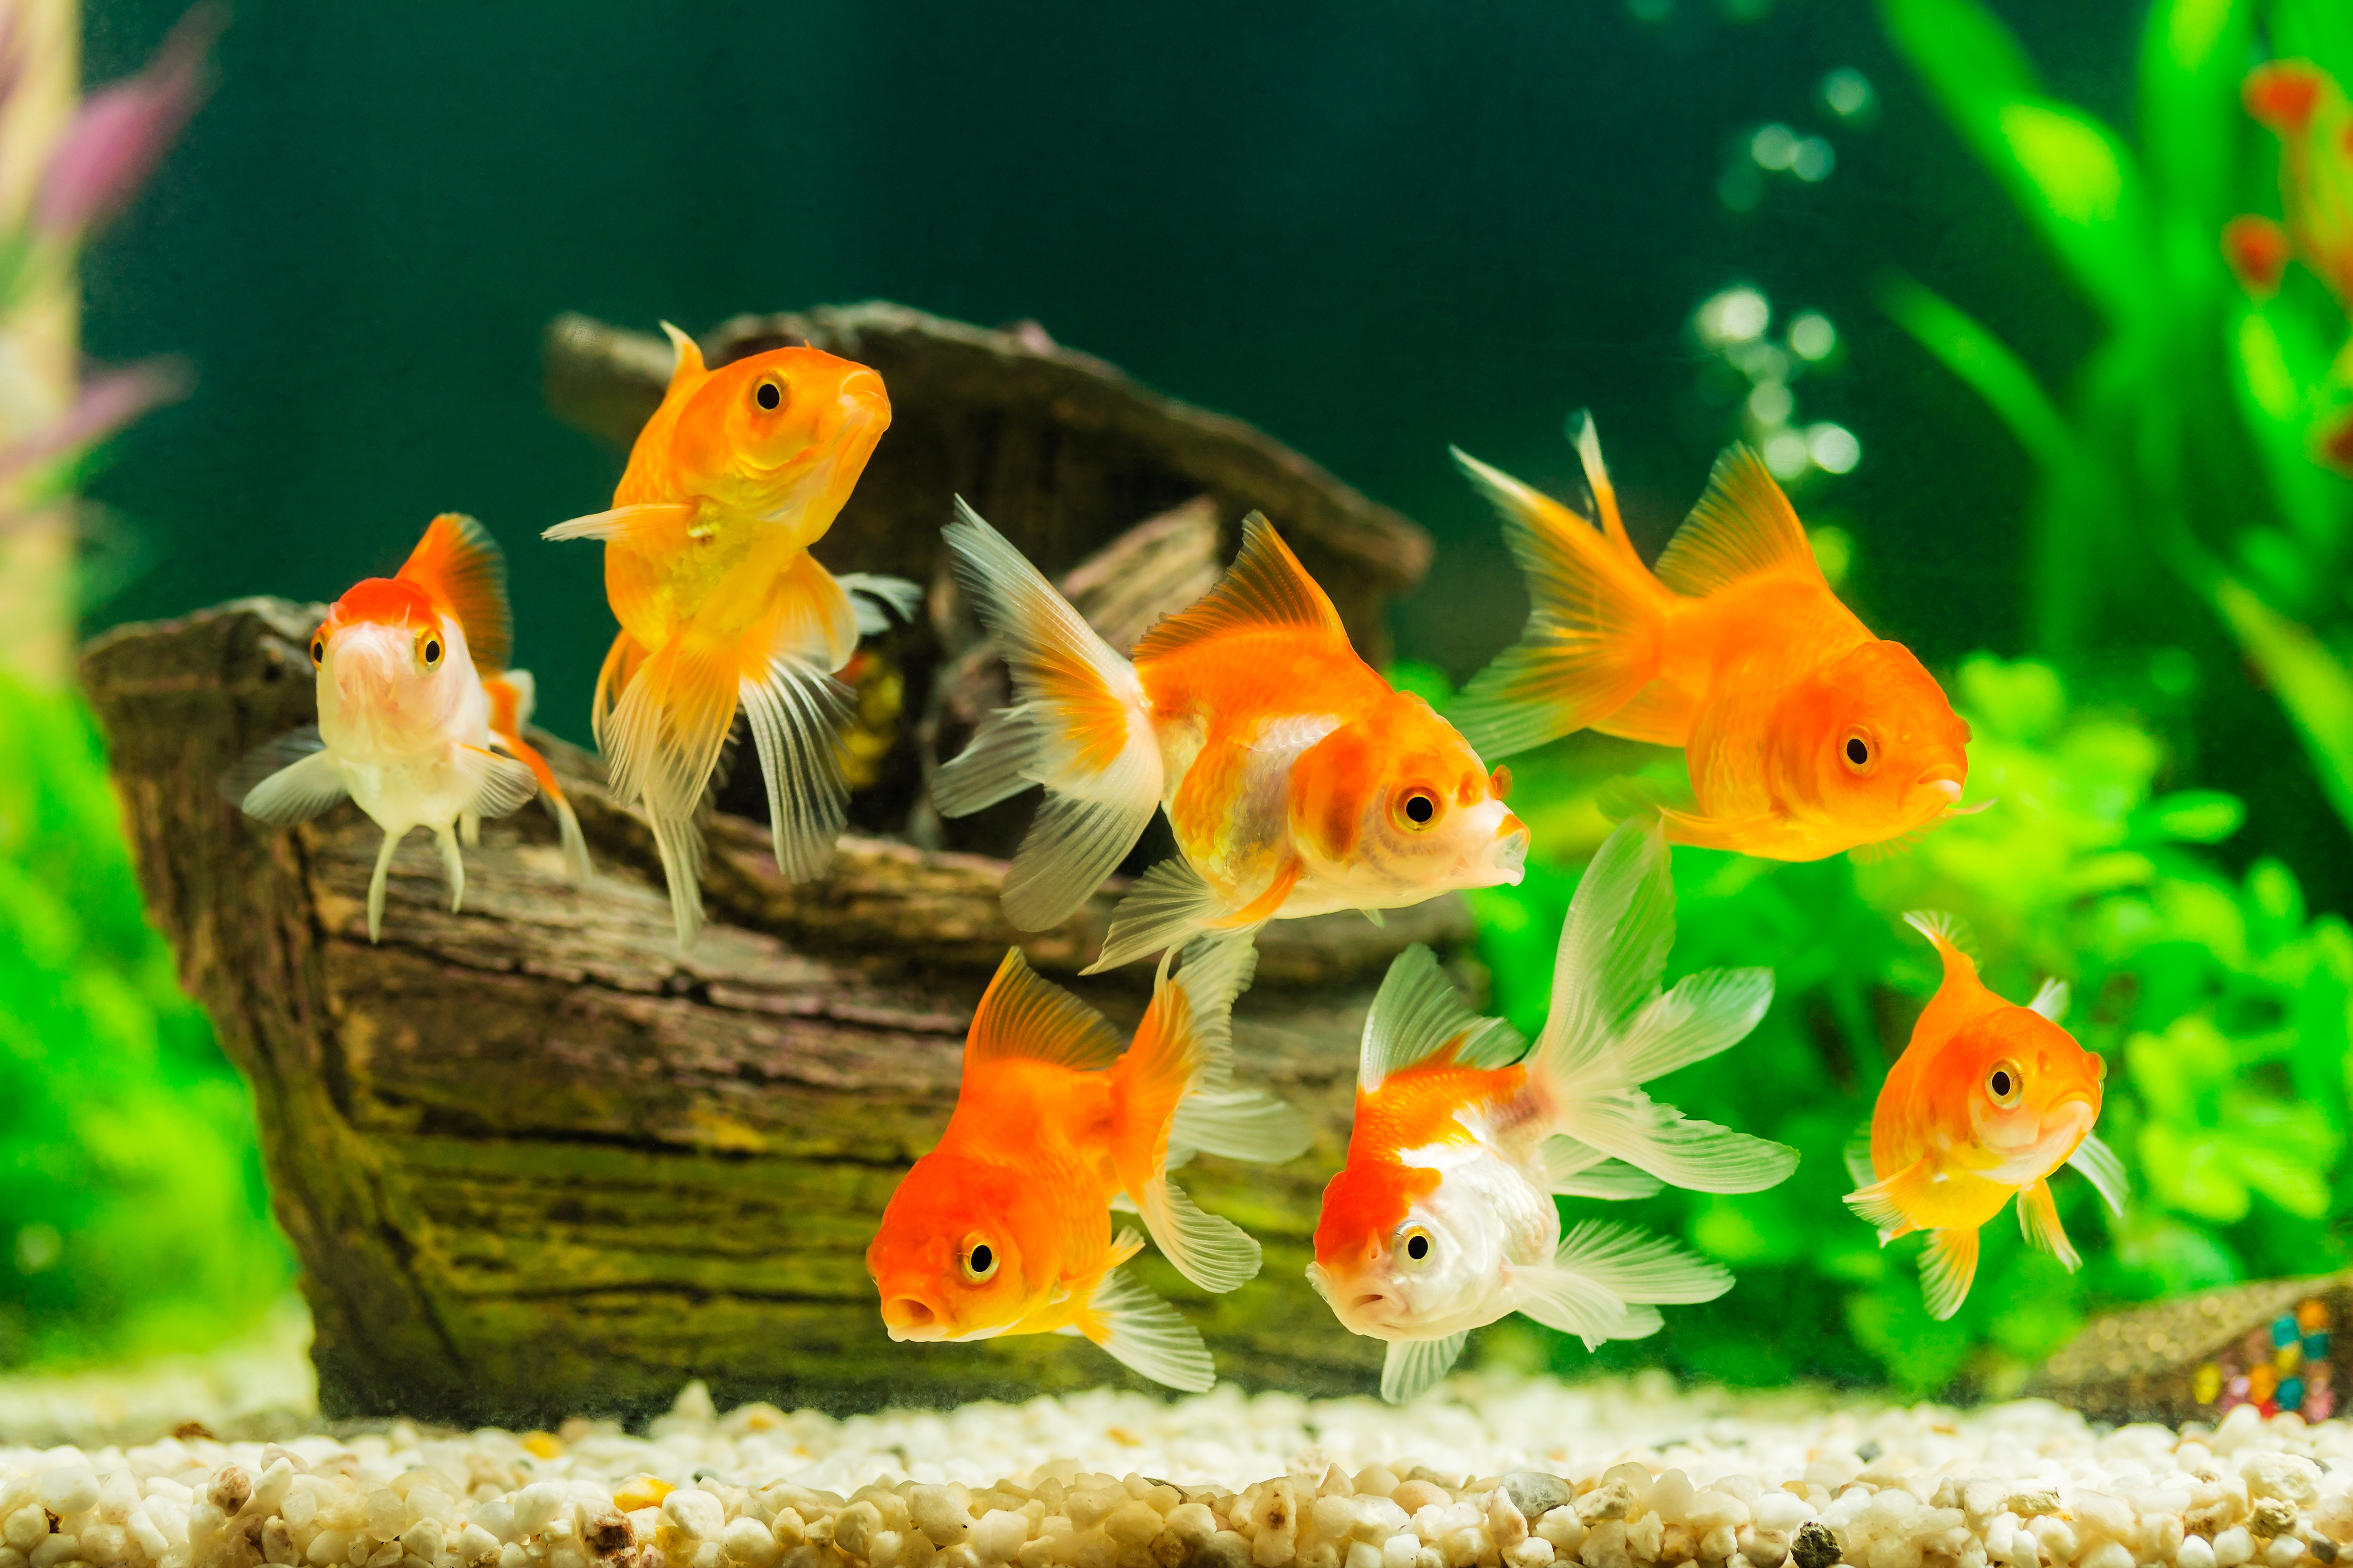 The Many Benefits of Home Aquariums